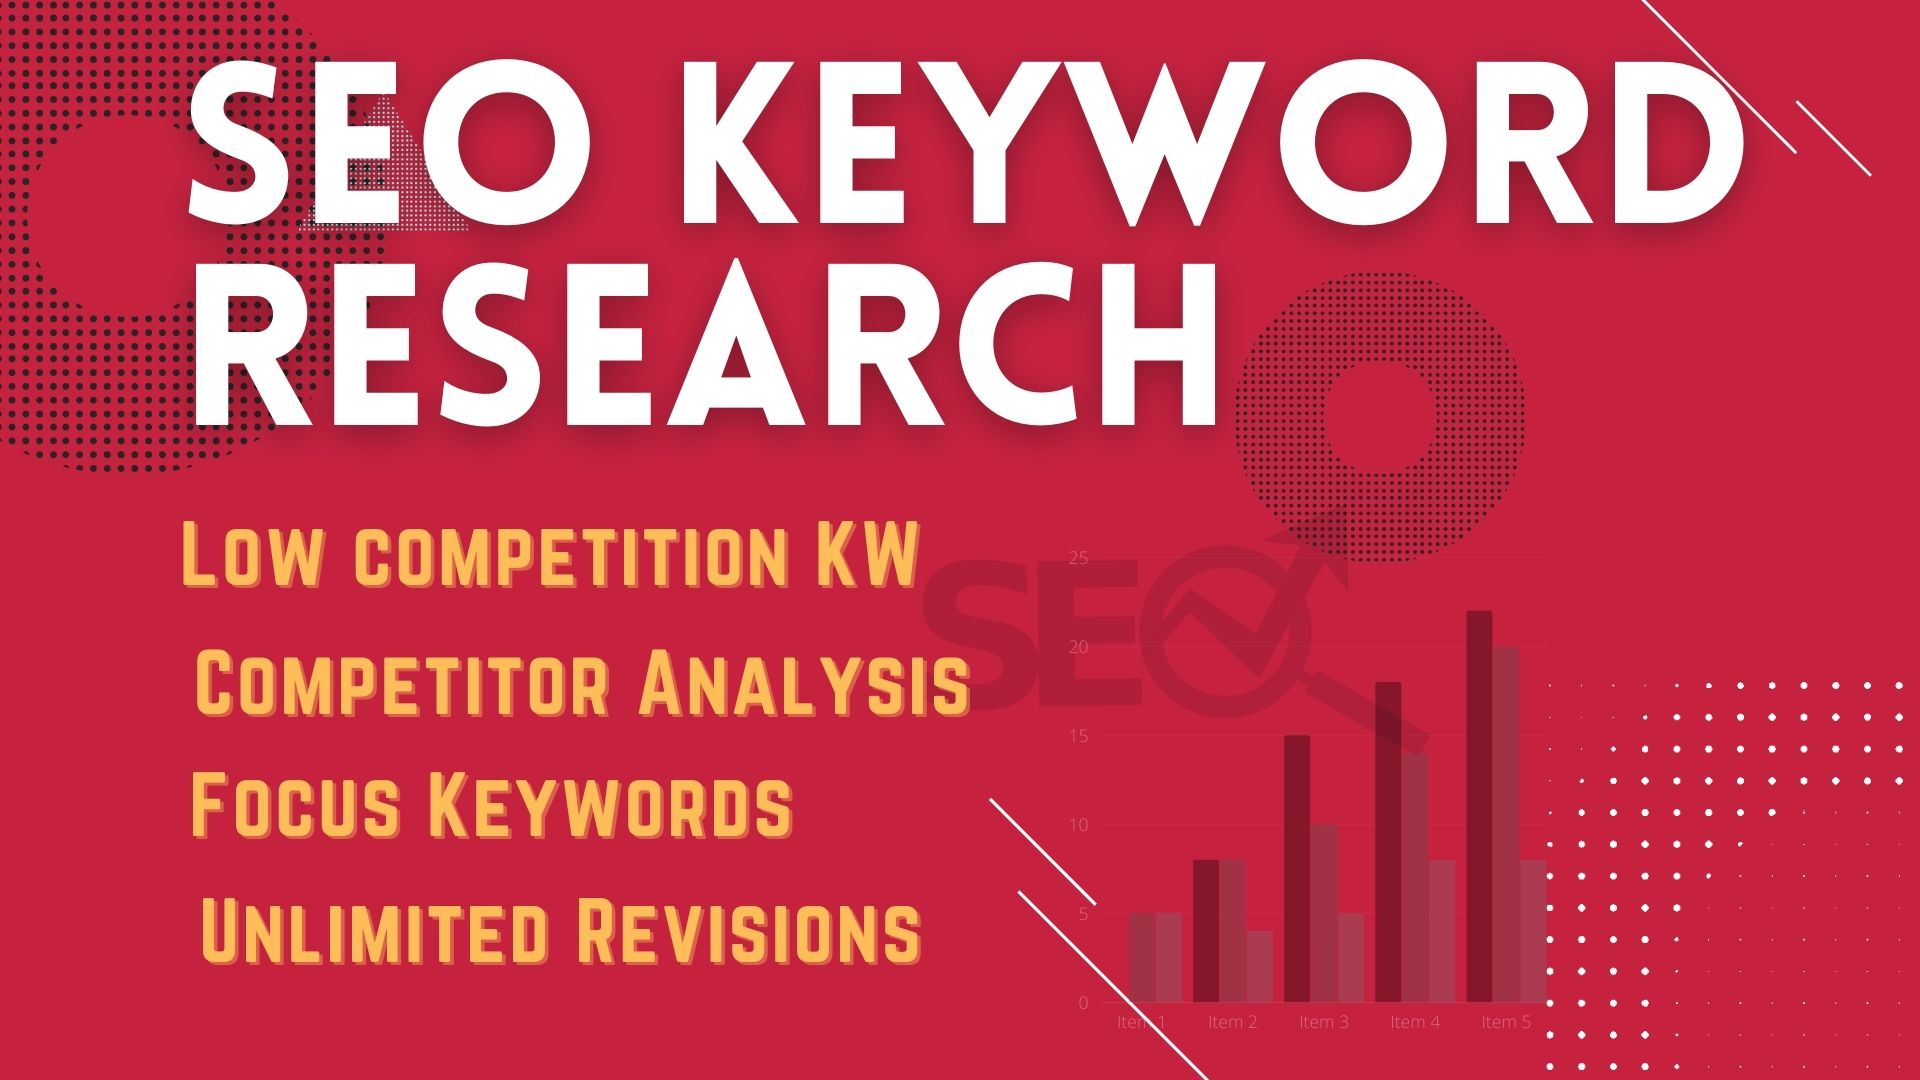 I will do SEO Keyword Research to rank higher